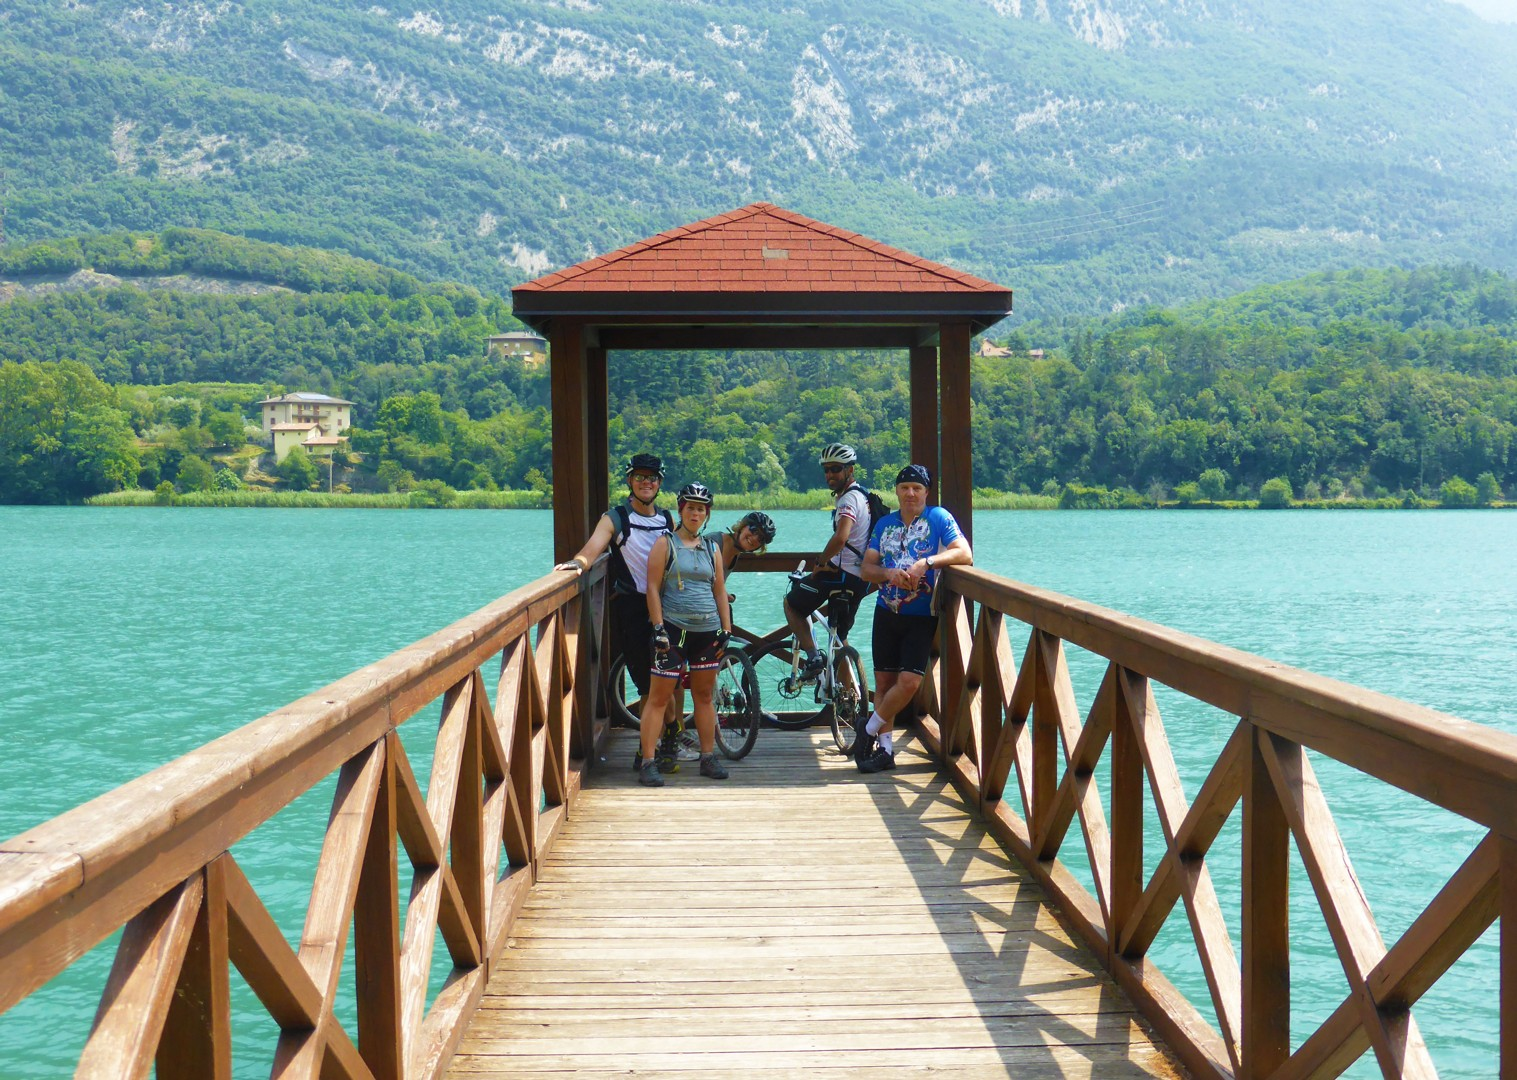 enjoy-ice-cream-shores-lake-garda-cycling-holiday.jpg - Austria and Italy - La Via Claudia - Guided Leisure Cycling Holiday - Italia Leisure and Family Cycling